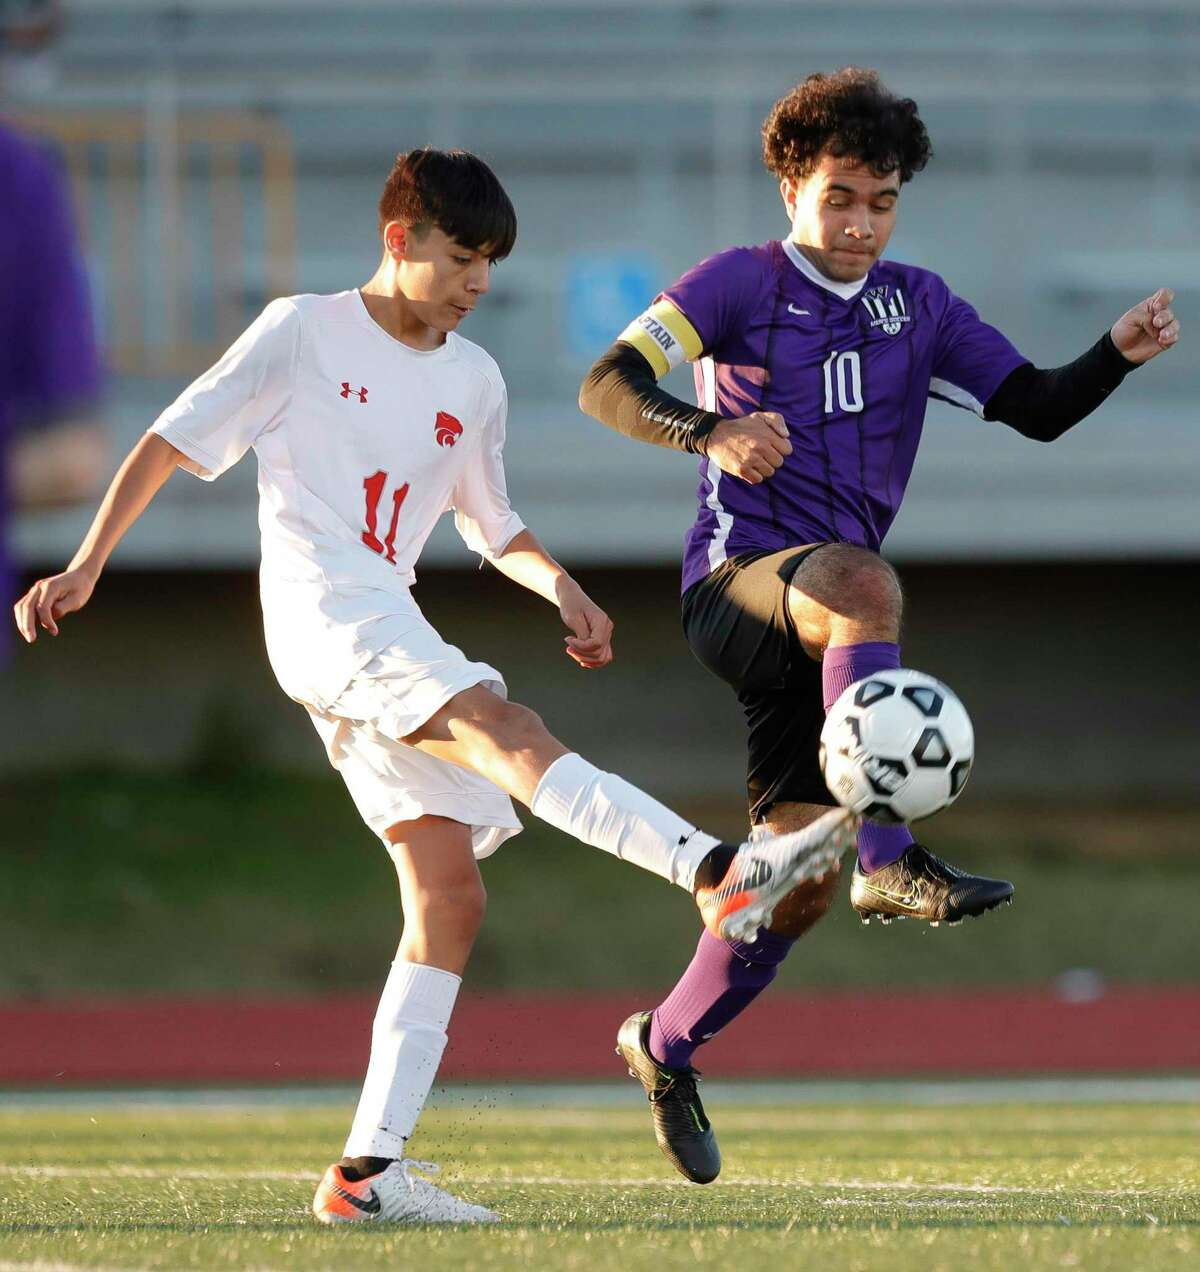 Willis' Ivan Ramirez (10) contests the ball against Splendora's Baruc Delgado (11) in the first period of a high school soccer match during the Wildkat Showcase, Saturday, Jan. 4, 2020, in Willis.